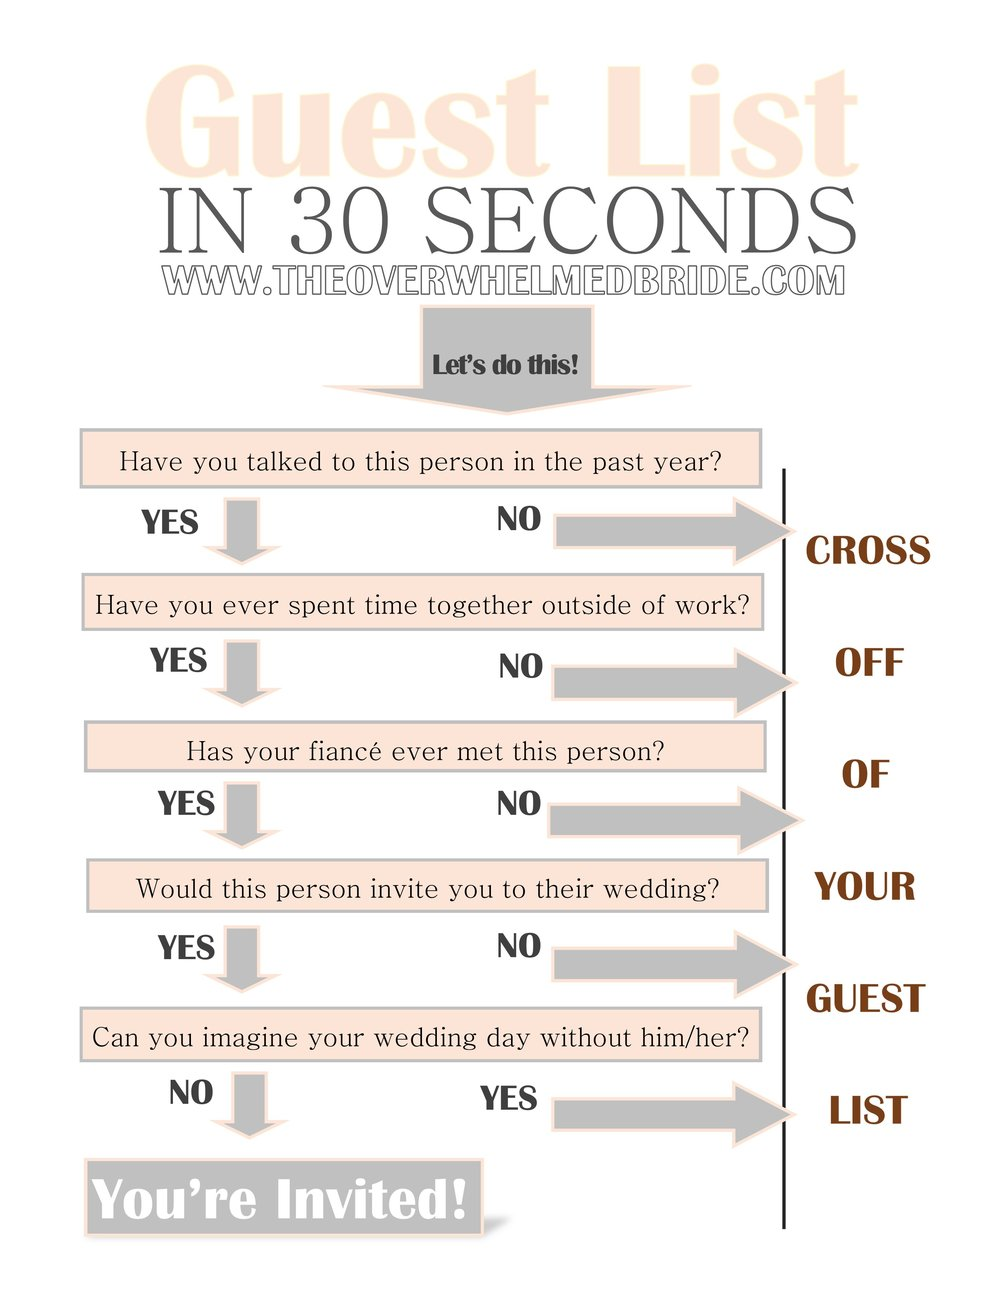 Wedding Timeline | Wedding Planning Timeline Checklist The Overwhelmed Bride